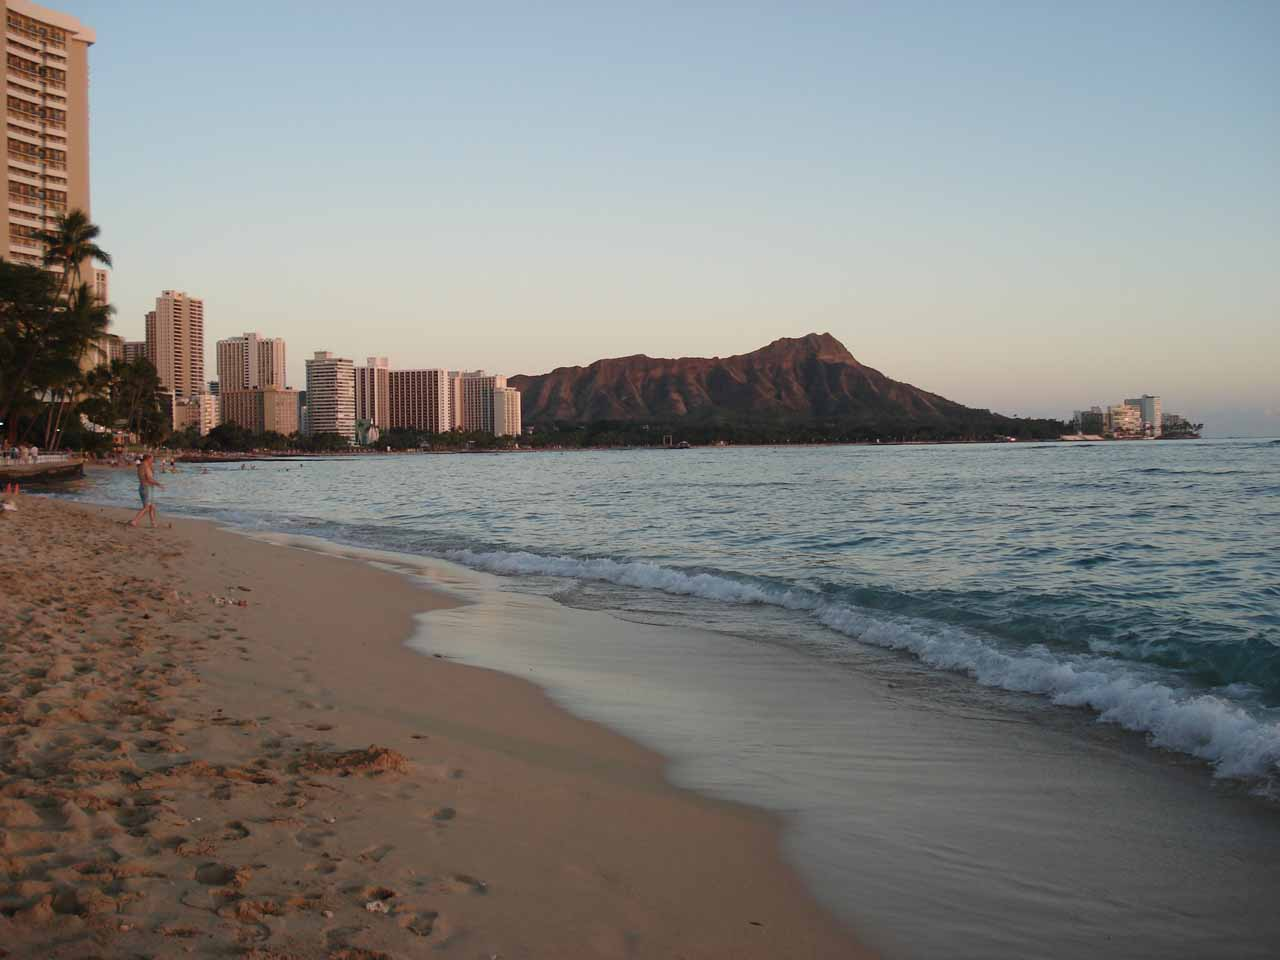 Most visitors to O'ahu would go to Waikiki Beach, and for good reason as there's a long stretch of sandy beach as well as tourist amenities and the Diamond Head Crater watching over all of this